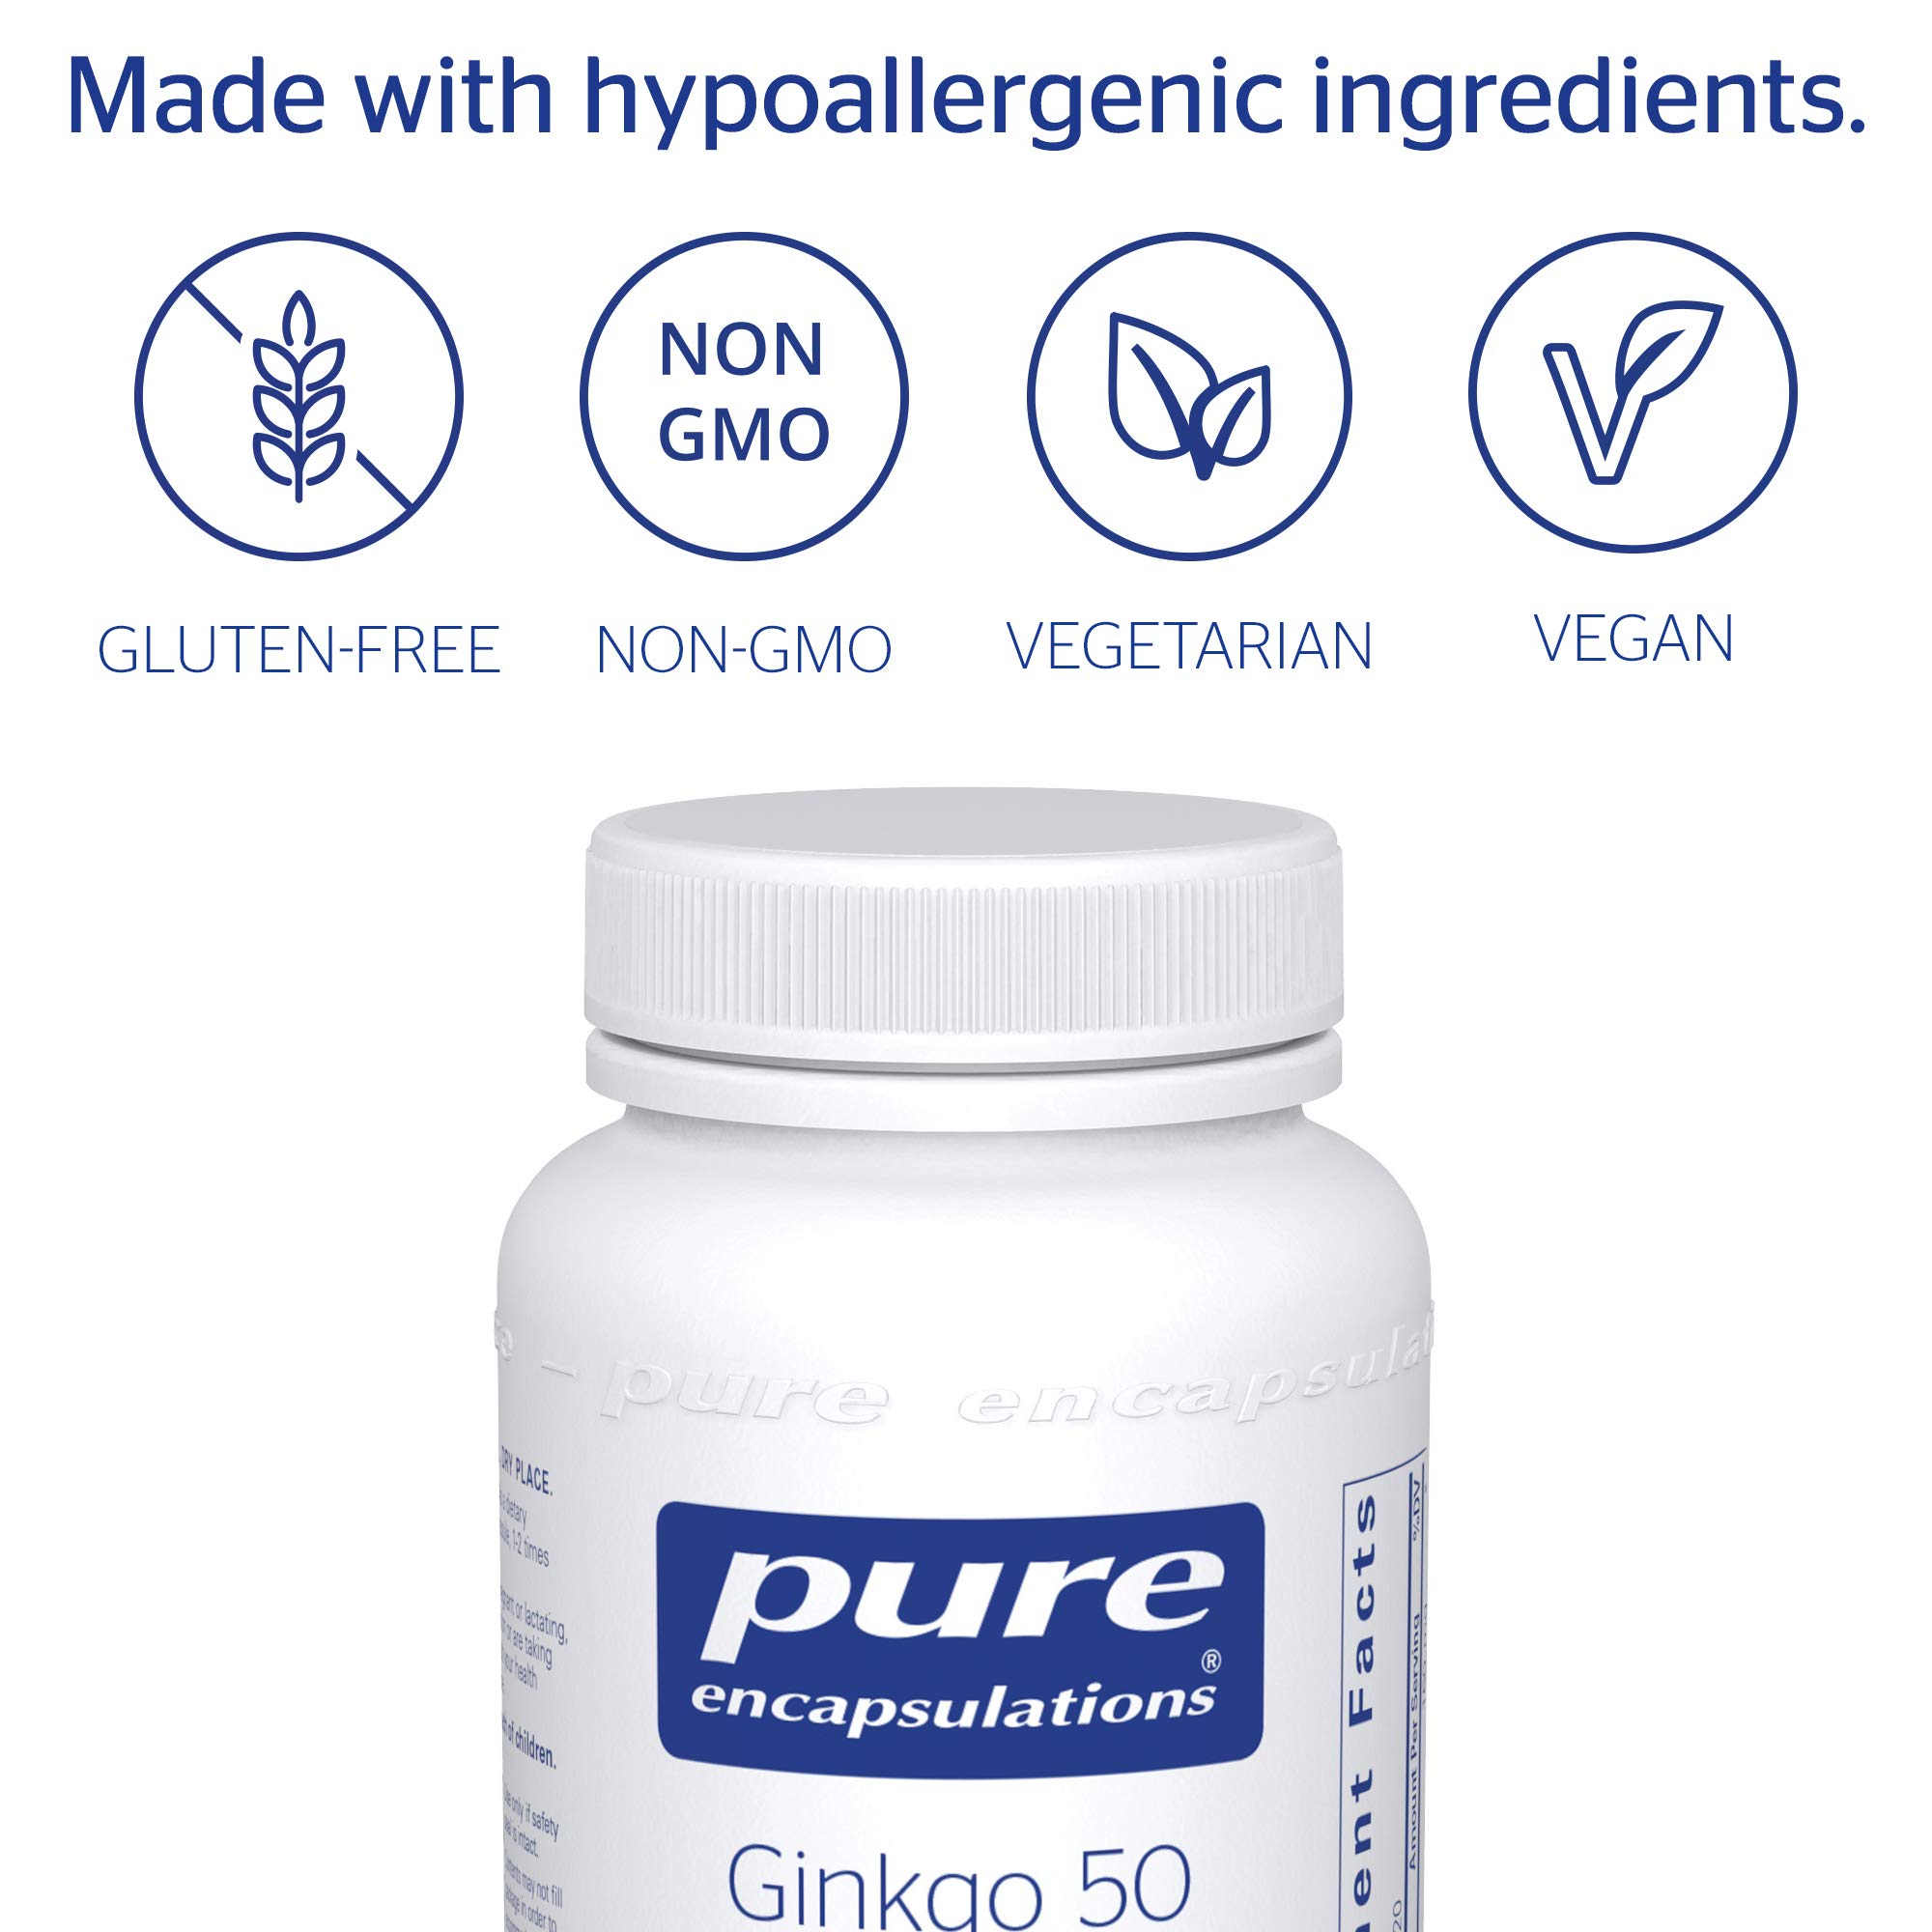 Pure Encapsulations - Ginkgo 50 160 mg - Hypoallergenic Ginkgo Biloba Extract - 120 Capsules by Pure Encapsulations (Image #4)